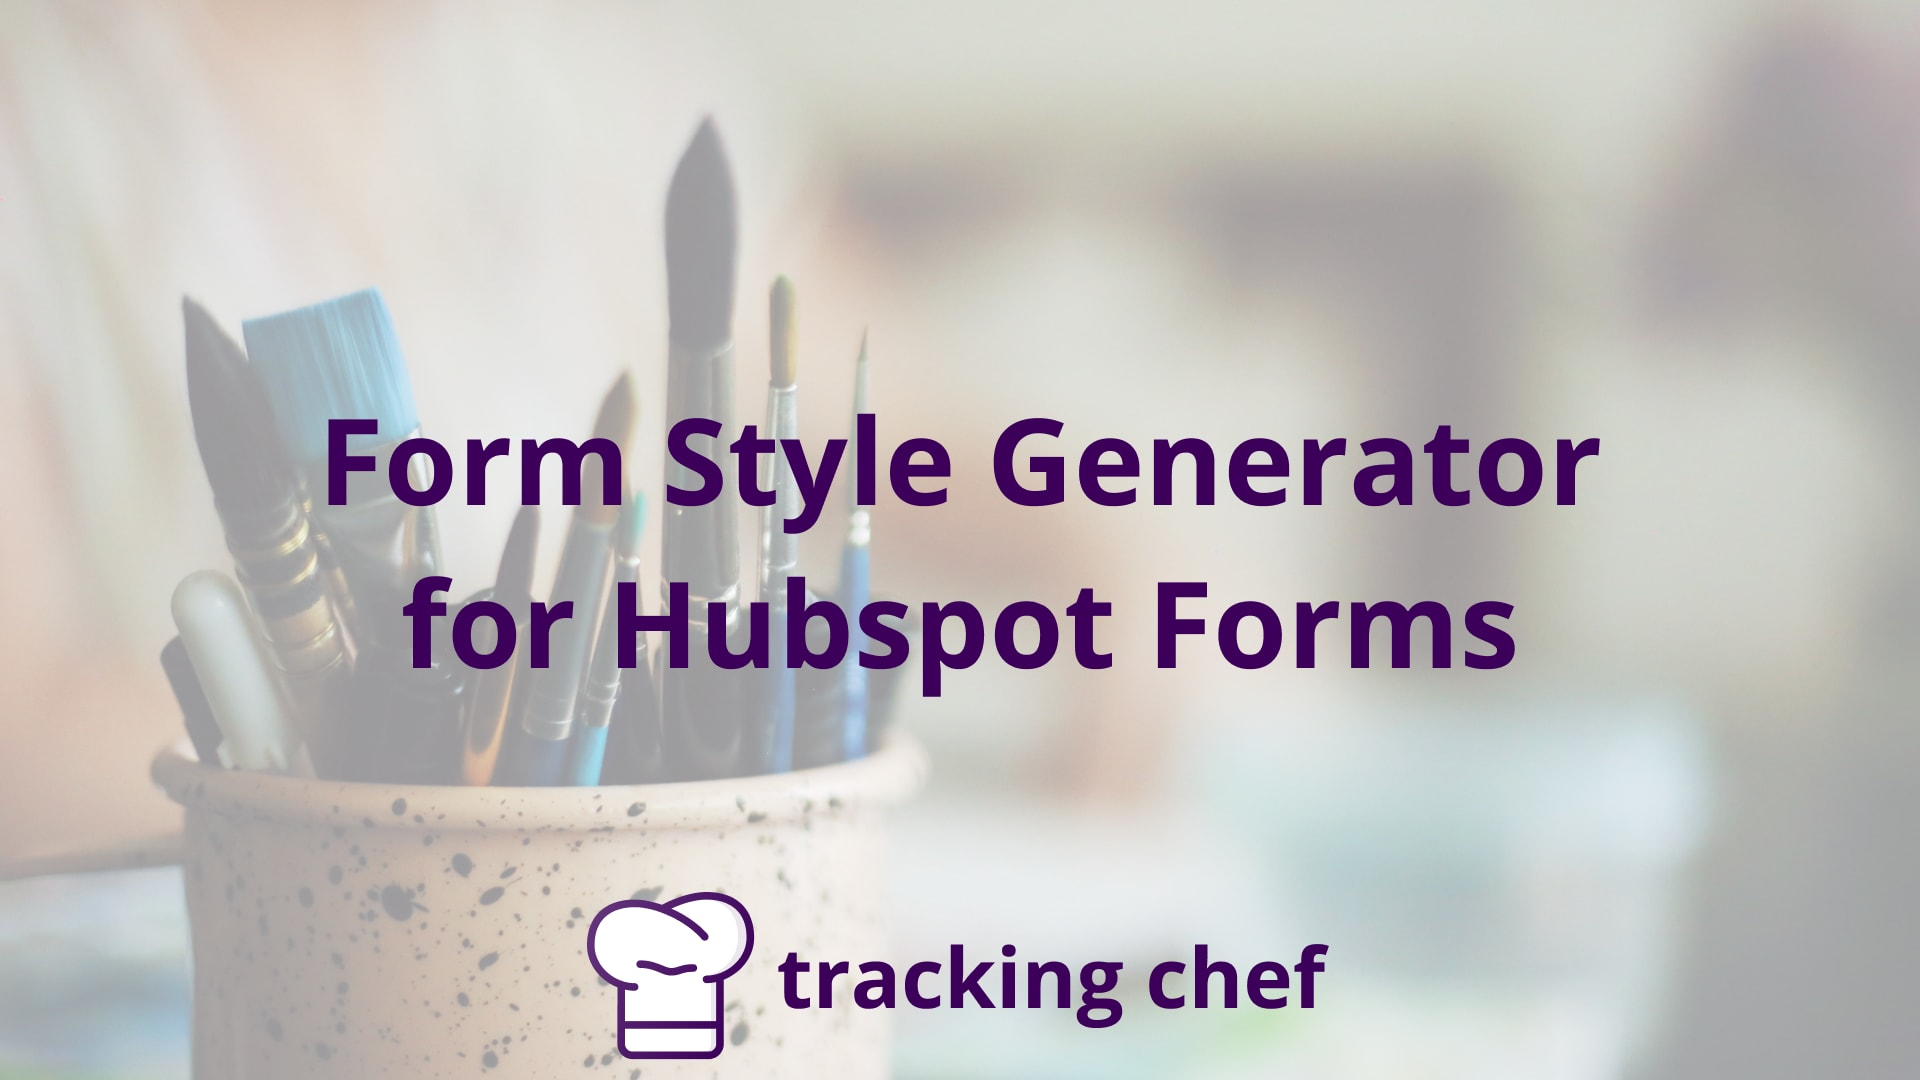 Form Style Generator for Hubspot Forms